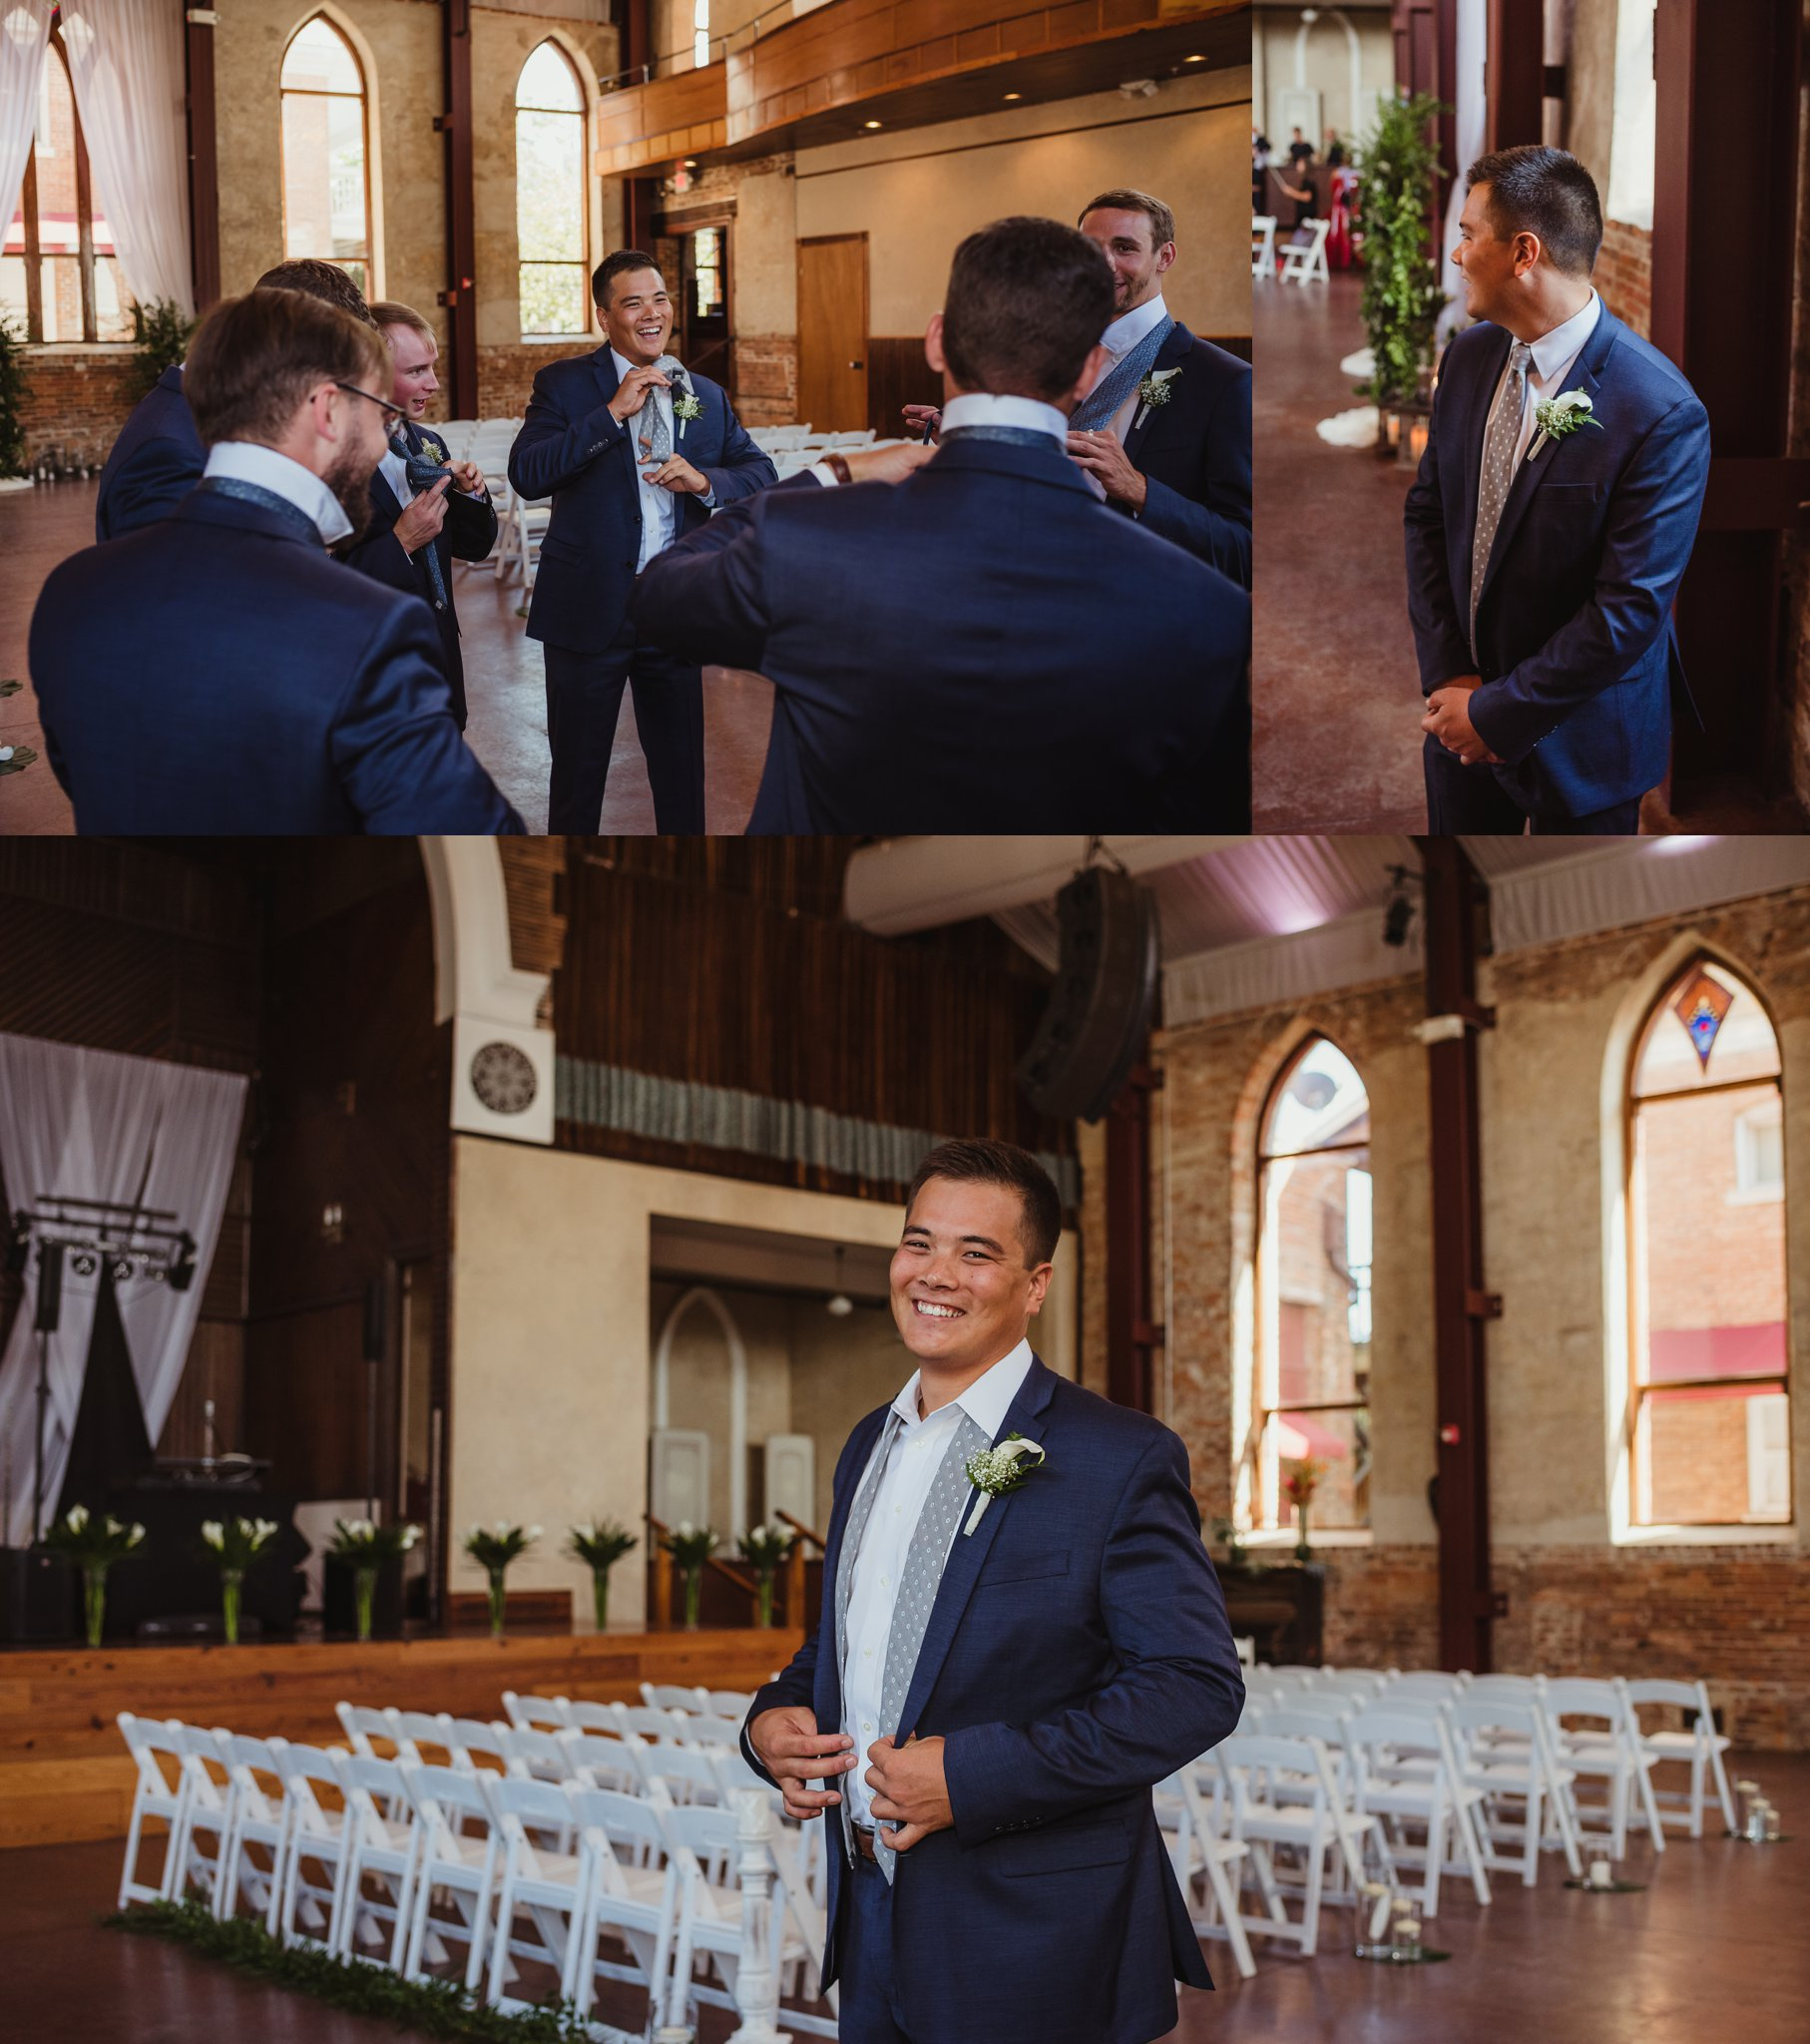 The groom gets ready with his groomsmen before his wedding in Wilmington, NC, photos by Rose Trail Images.